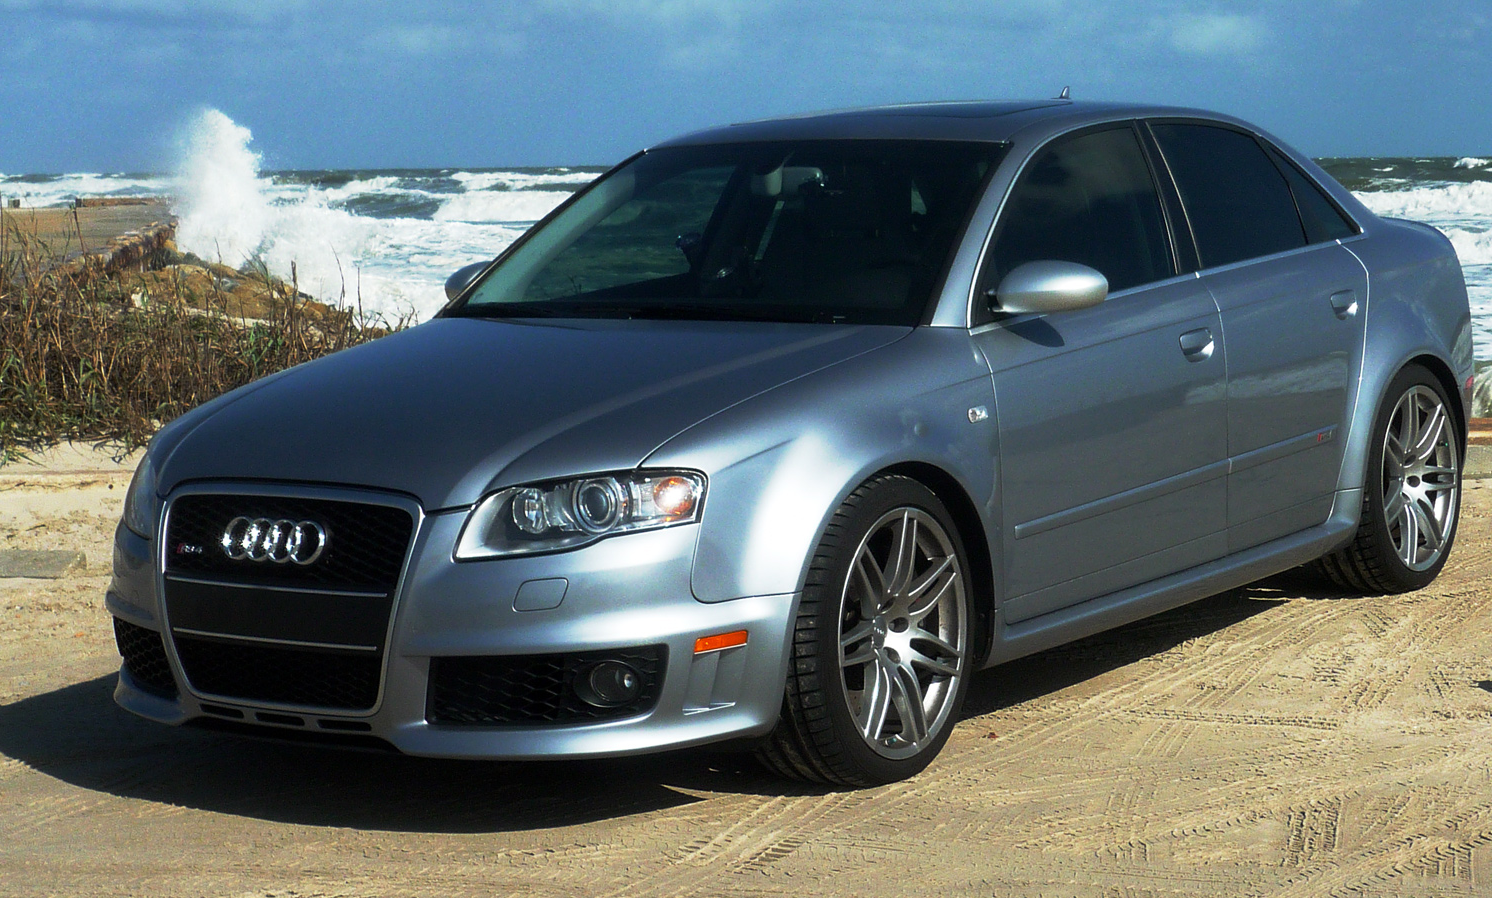 2006 audi rs4 salon 8e pictures information and specs. Black Bedroom Furniture Sets. Home Design Ideas